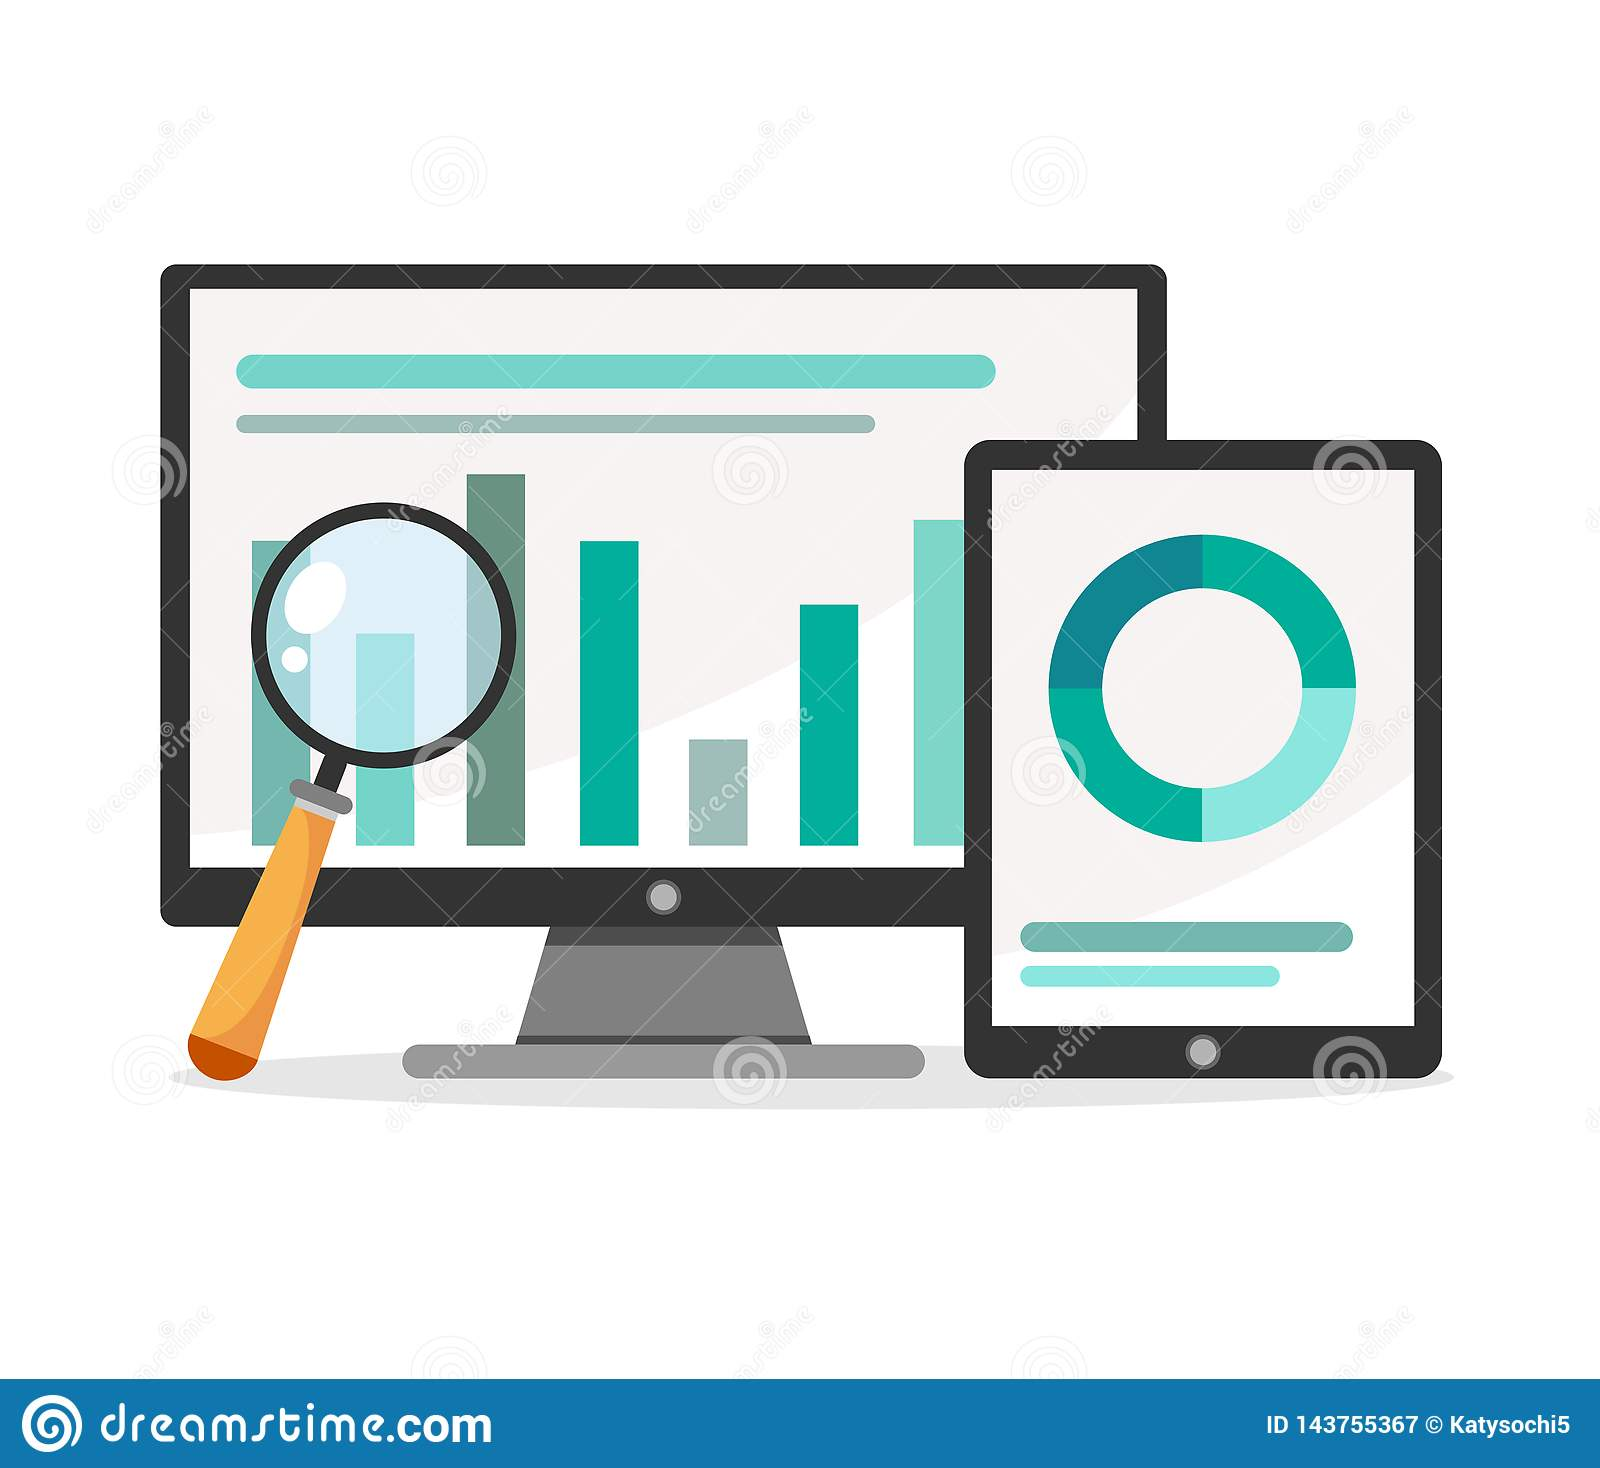 Vector illustration of analytics and data management concept. White background